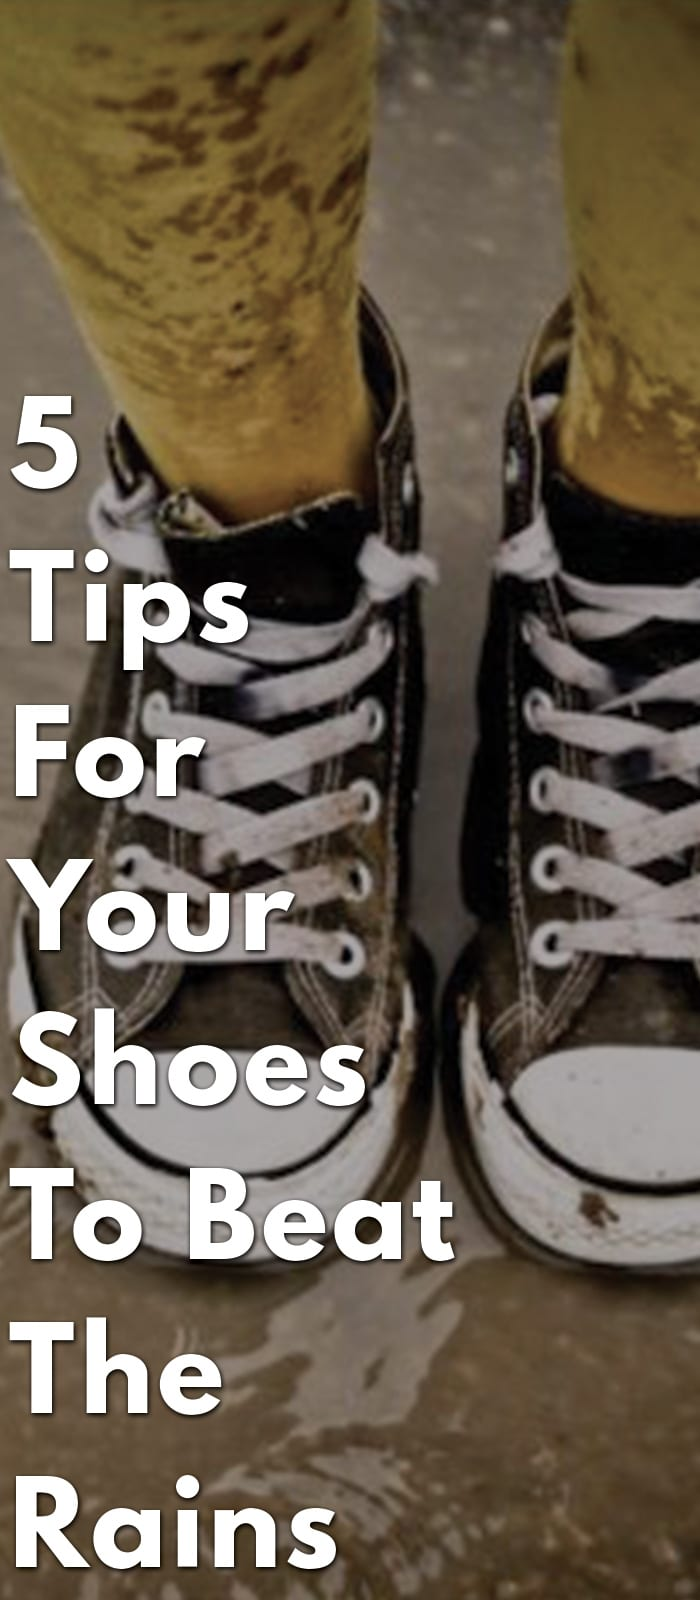 5-Tips-For-Your-Shoes-To-Beat-The-Rains